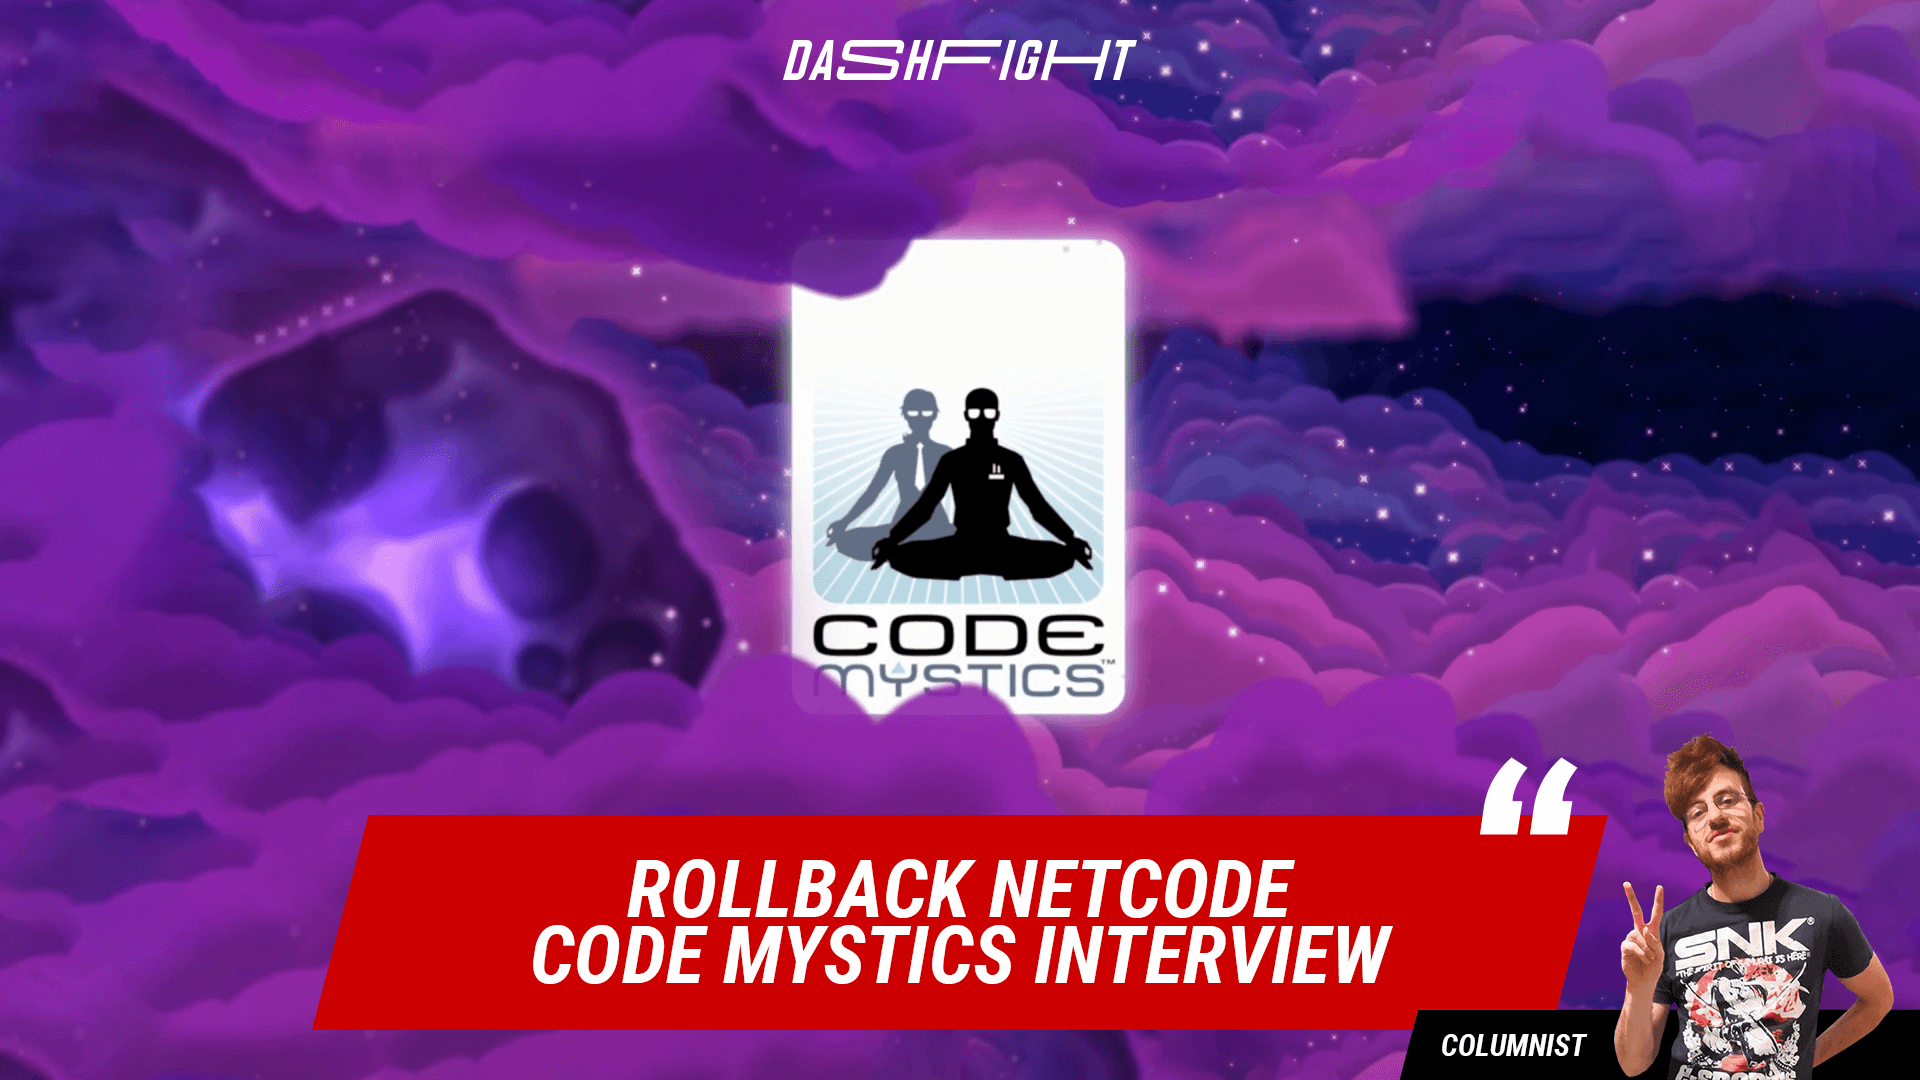 Jeff Vavasour Interview. The Importance of RollBack Netcode